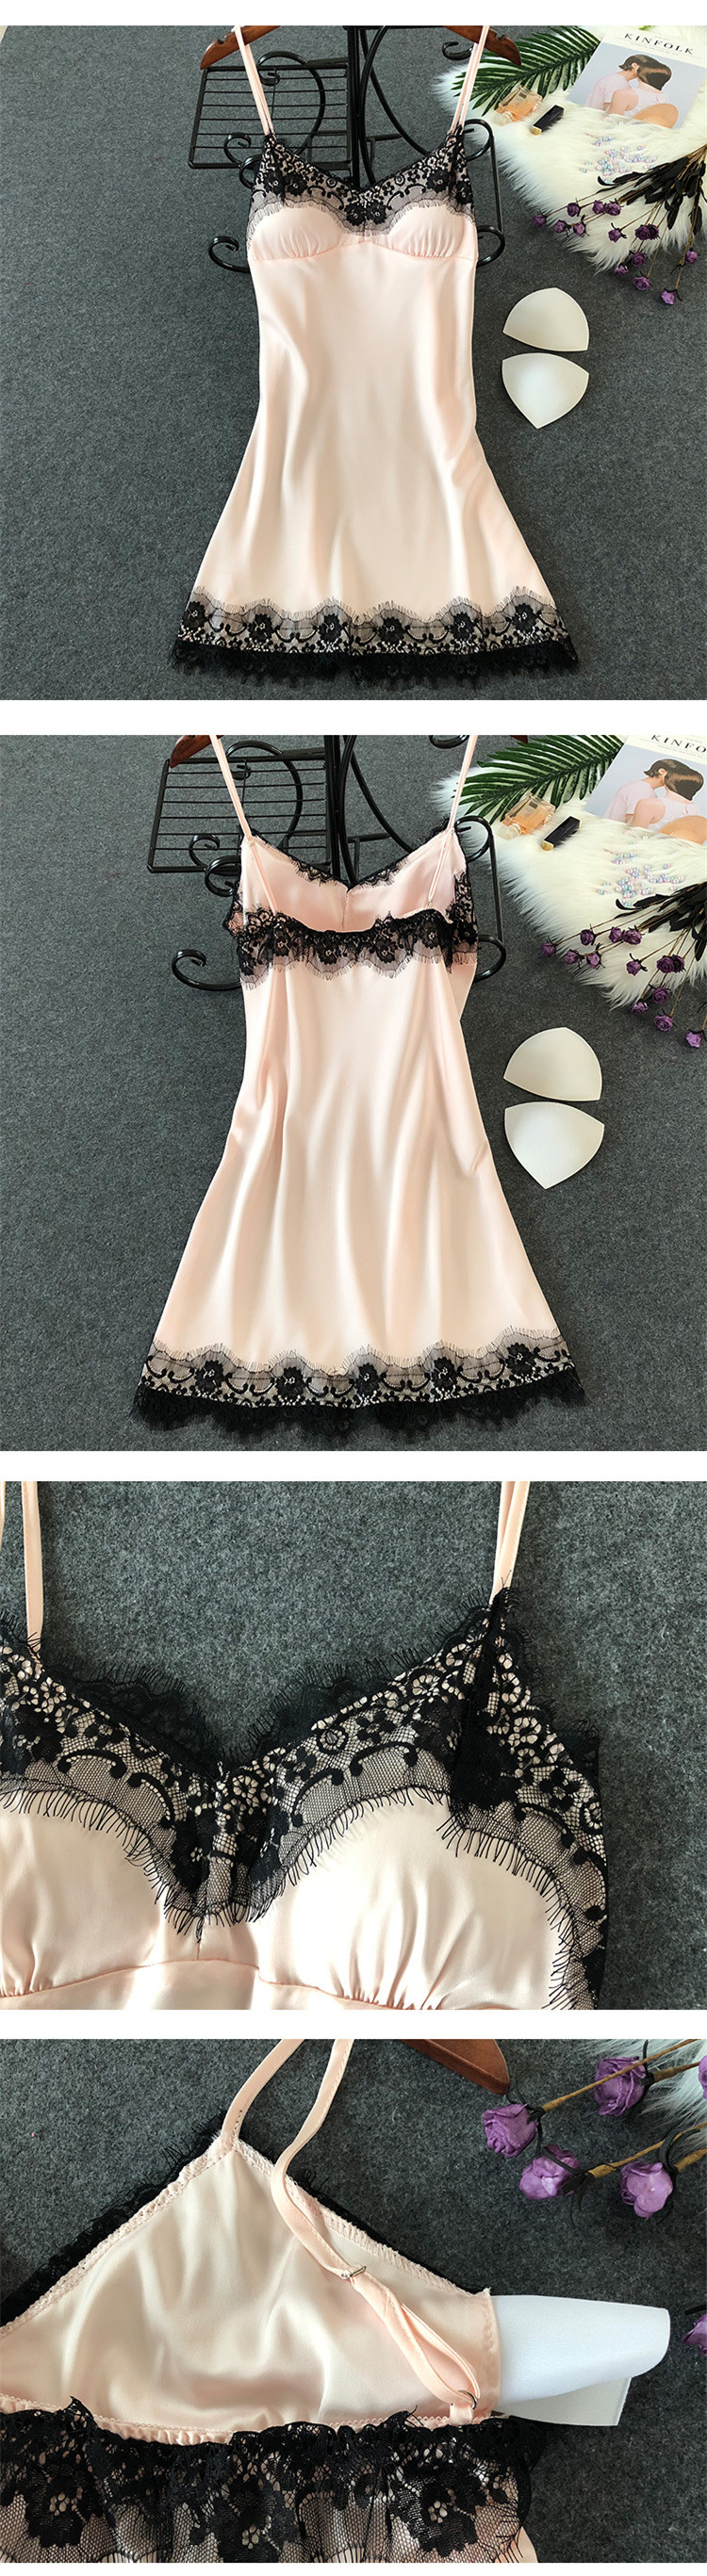 HTB1Qg qOXzqK1RjSZFvq6AB7VXaR - Women's Sexy Lingerie Silk Nightgown Summer Dress Lace Night Dress Sleepwear Babydoll Nightie Satin Homewear Chest Pad Nightwear